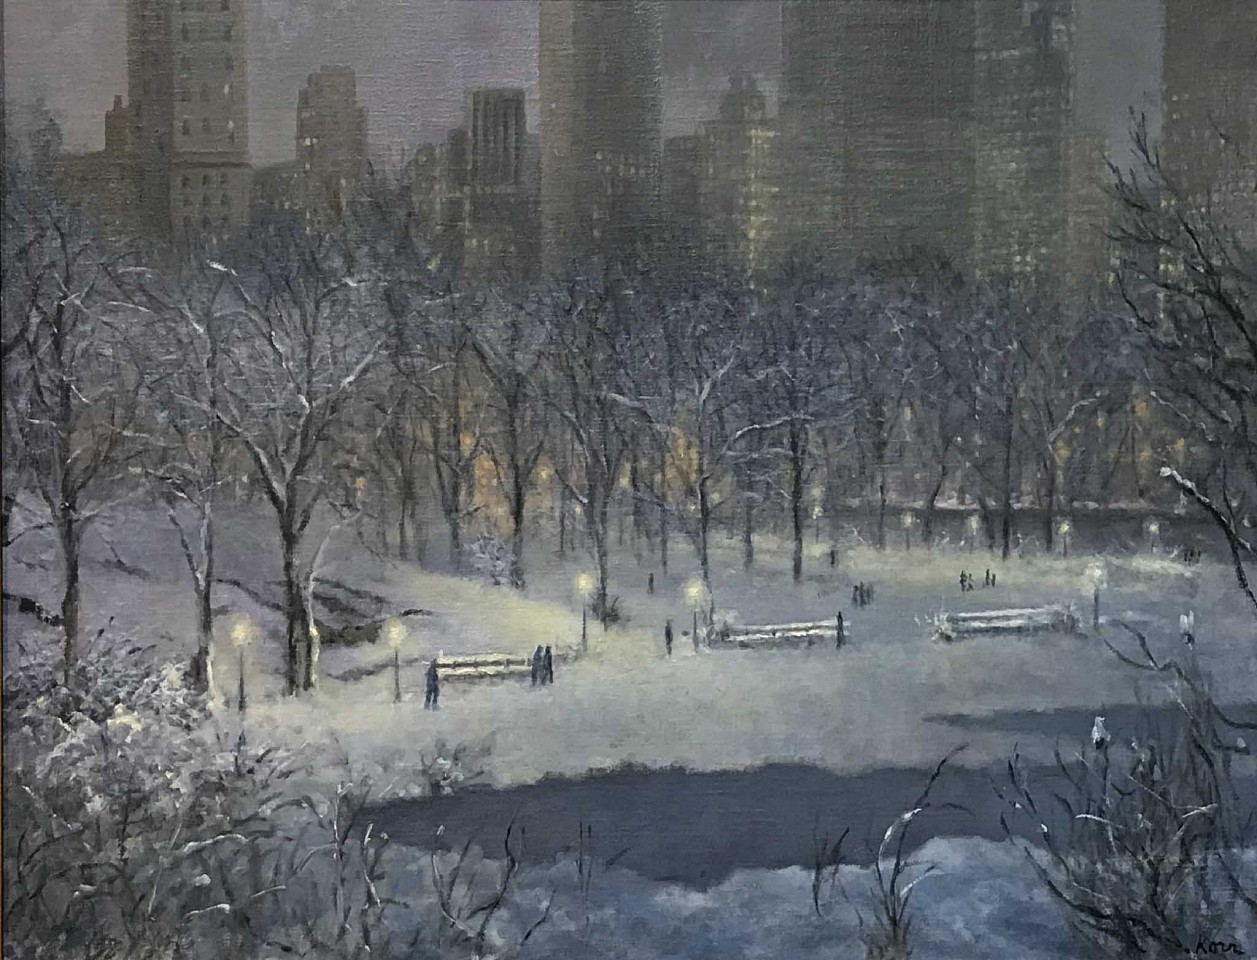 Marla Korr, Central Park 2018, oil on linen